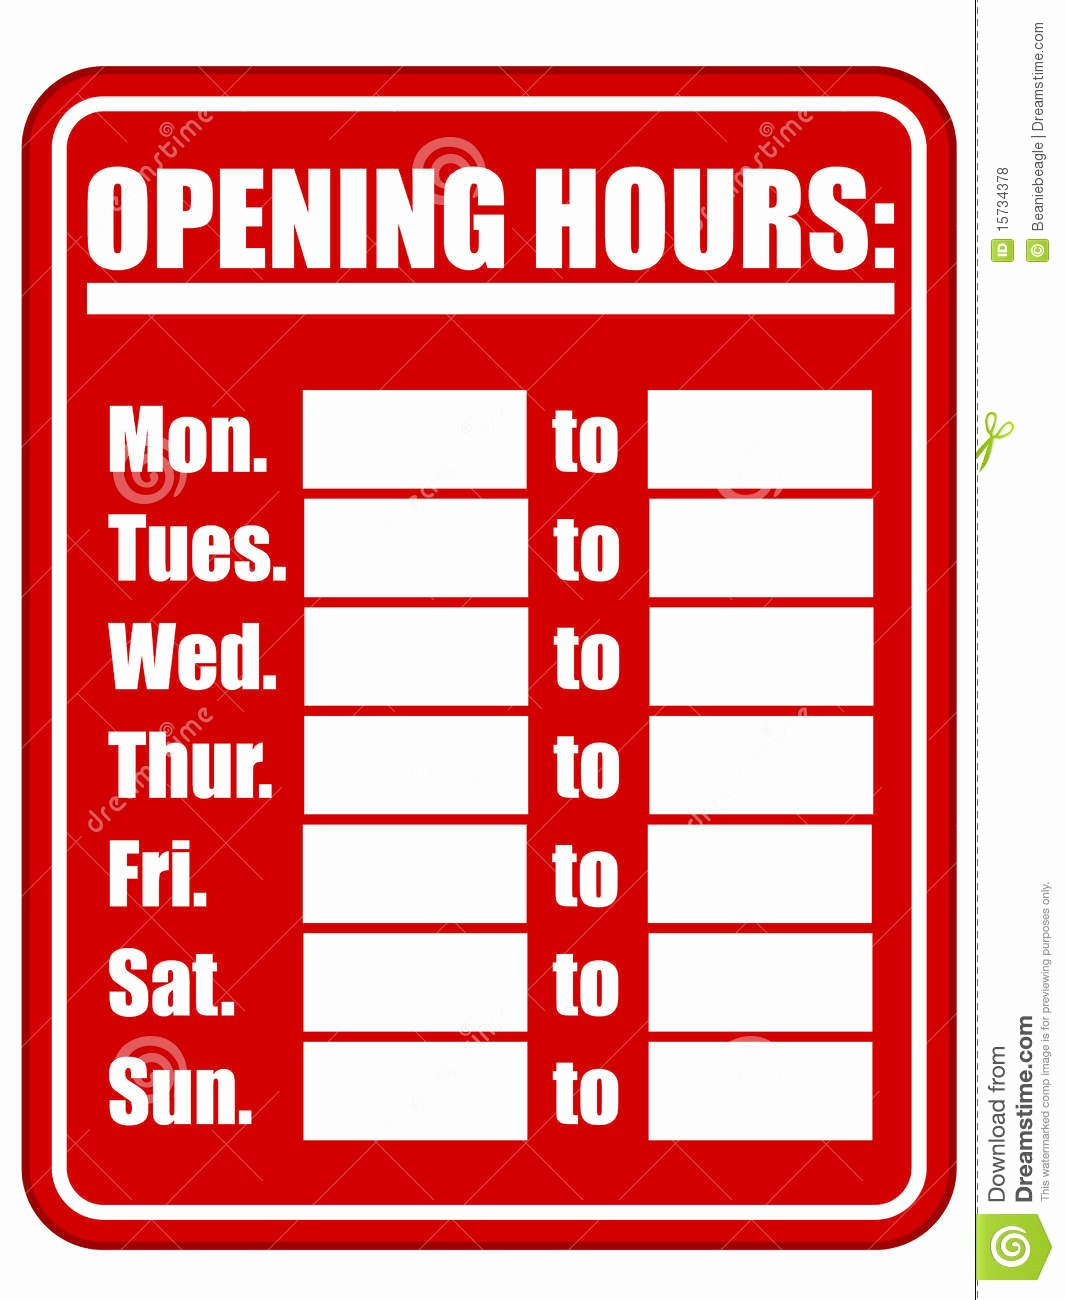 royalty free stock photos opening hours sign eps image